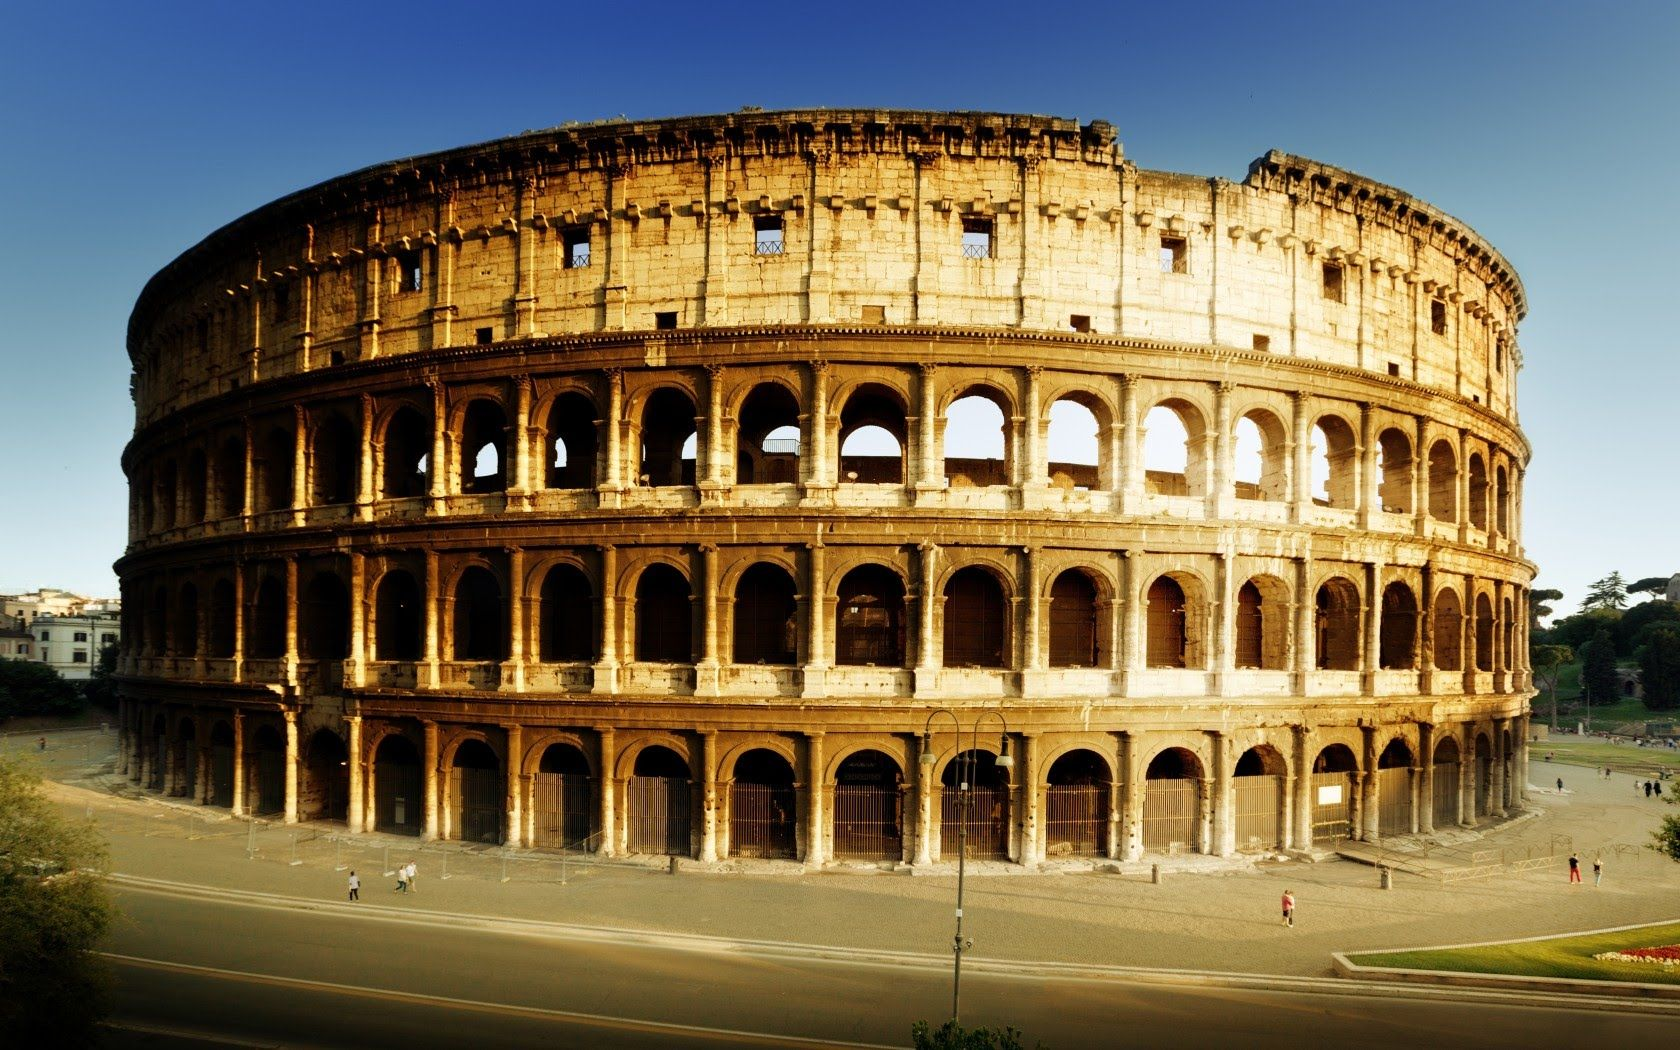 Roman Colosseum The Ancient Rome Colosseum Facts History Documentary Colosseum Rome Italy Architecture Rome Italy Colosseum